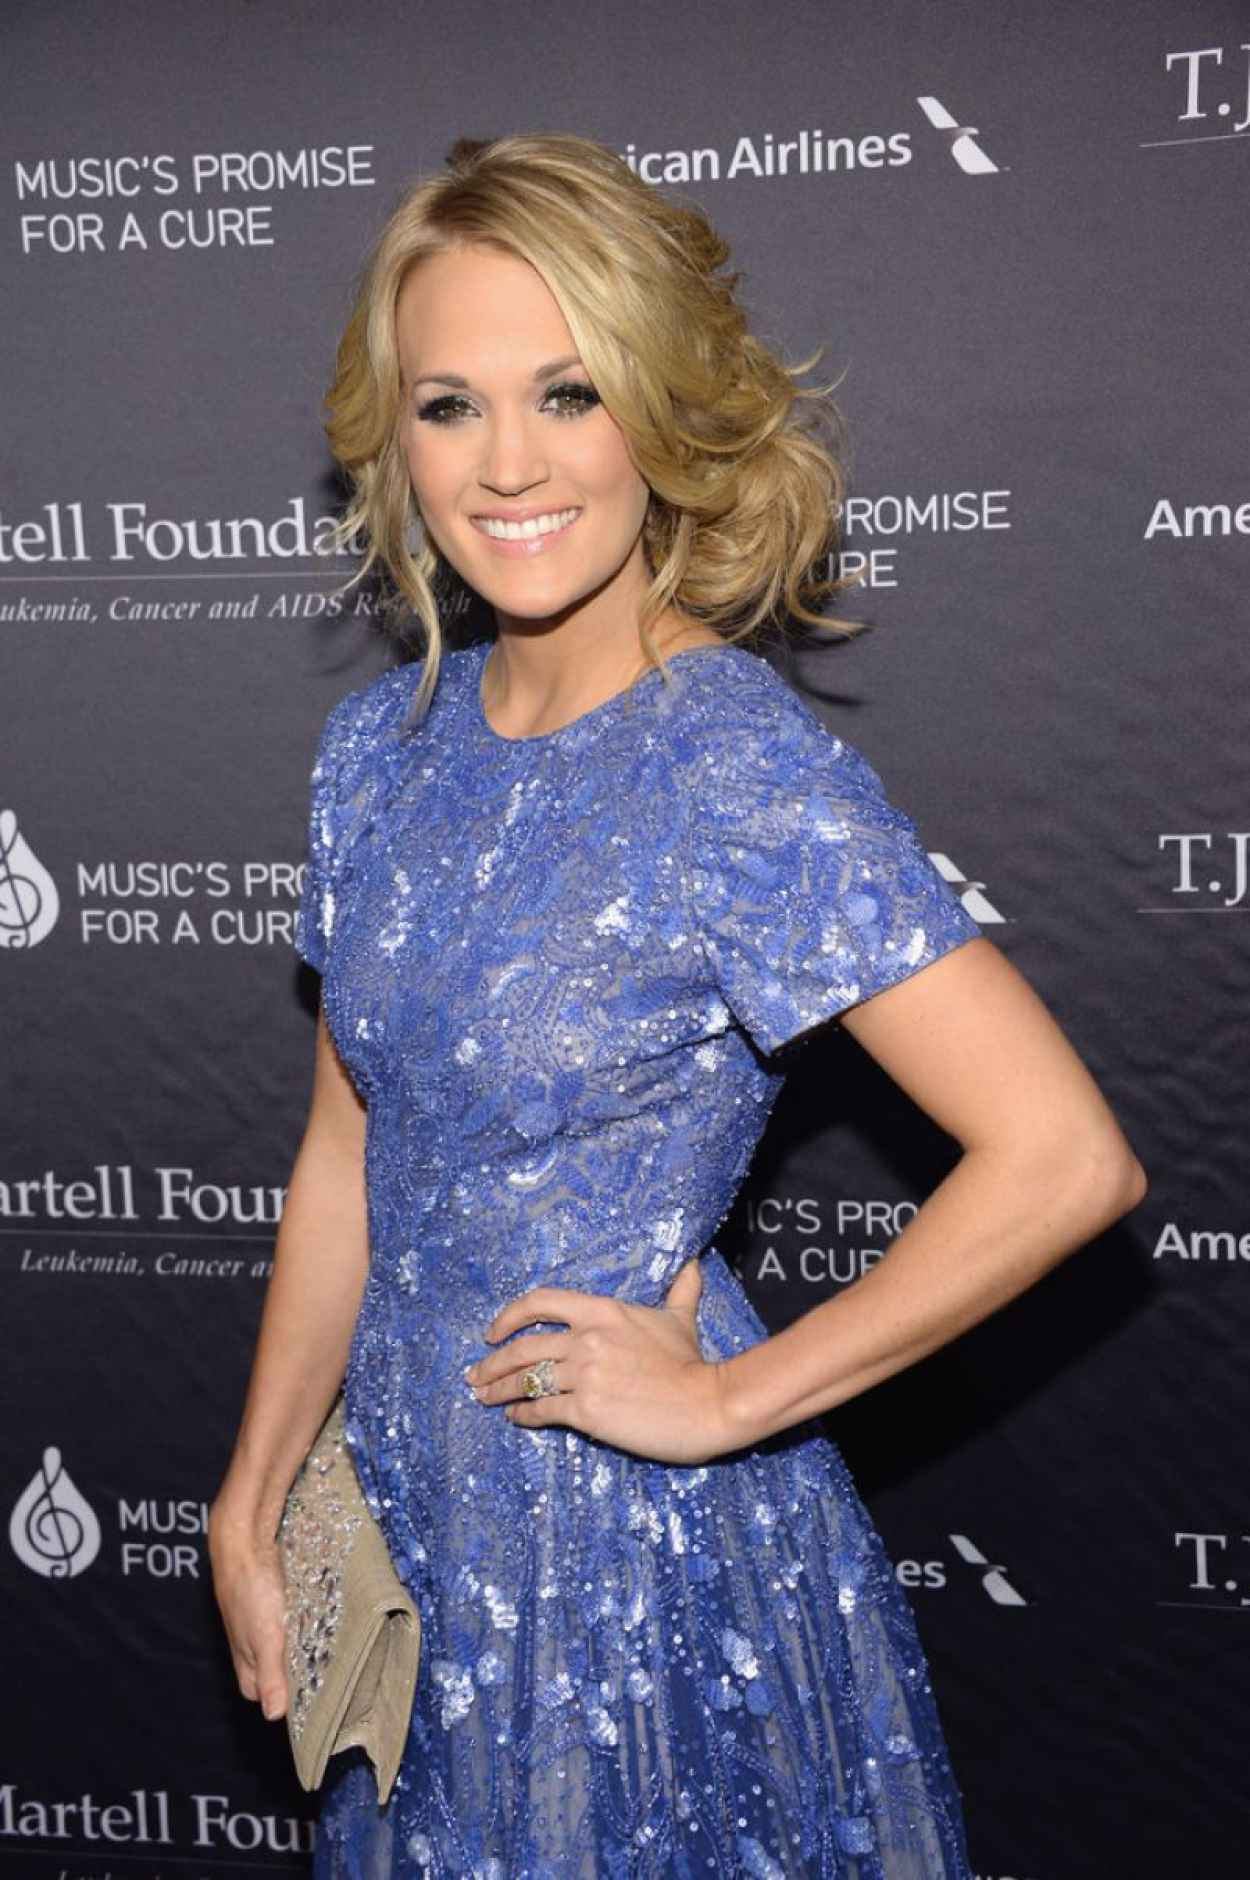 Carrie Underwood - T.J. Martell Foundation Gala in New York City-1